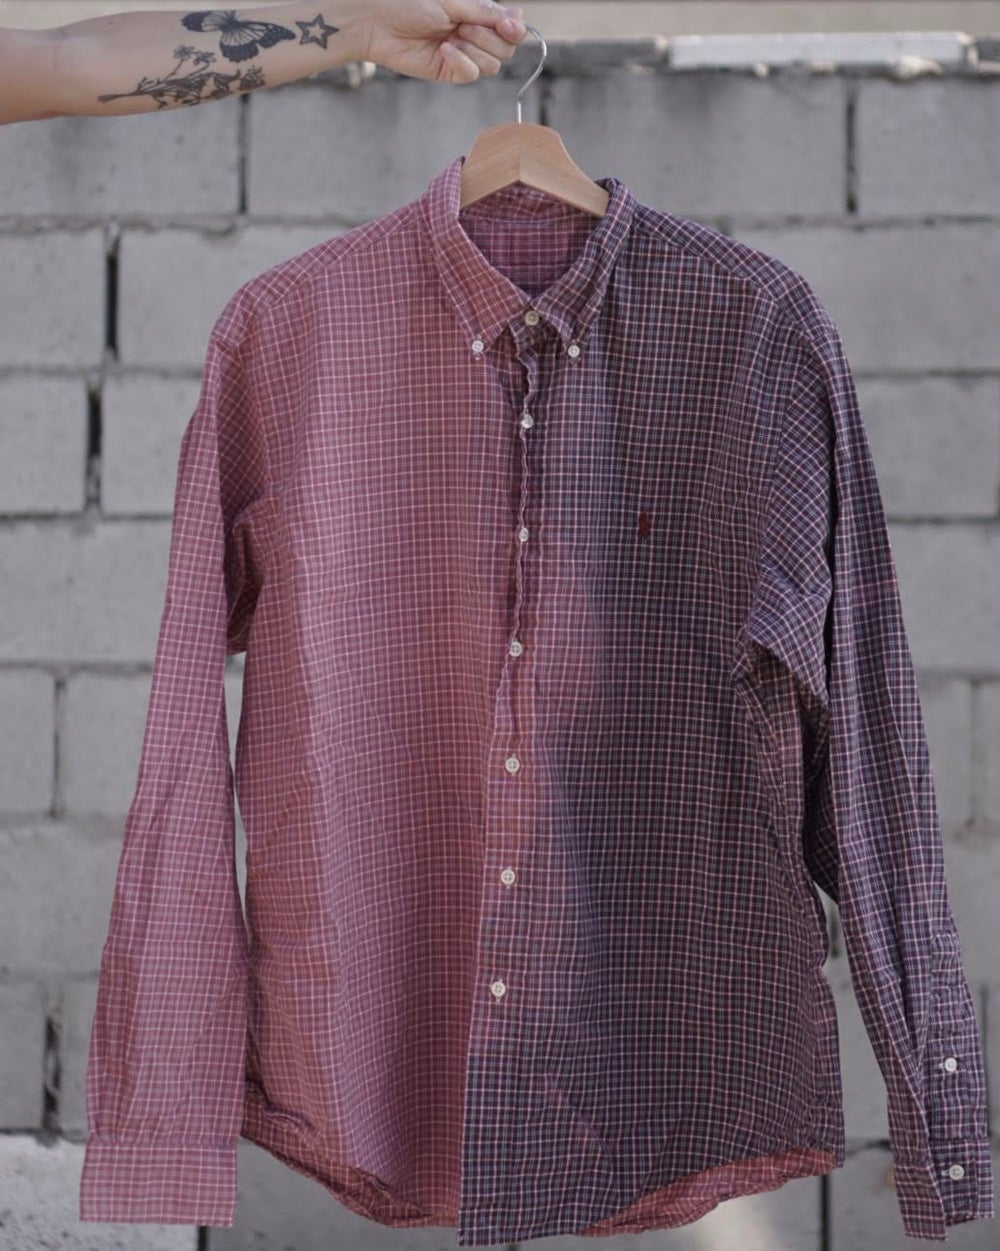 Image of half raulph/half lauren button up.